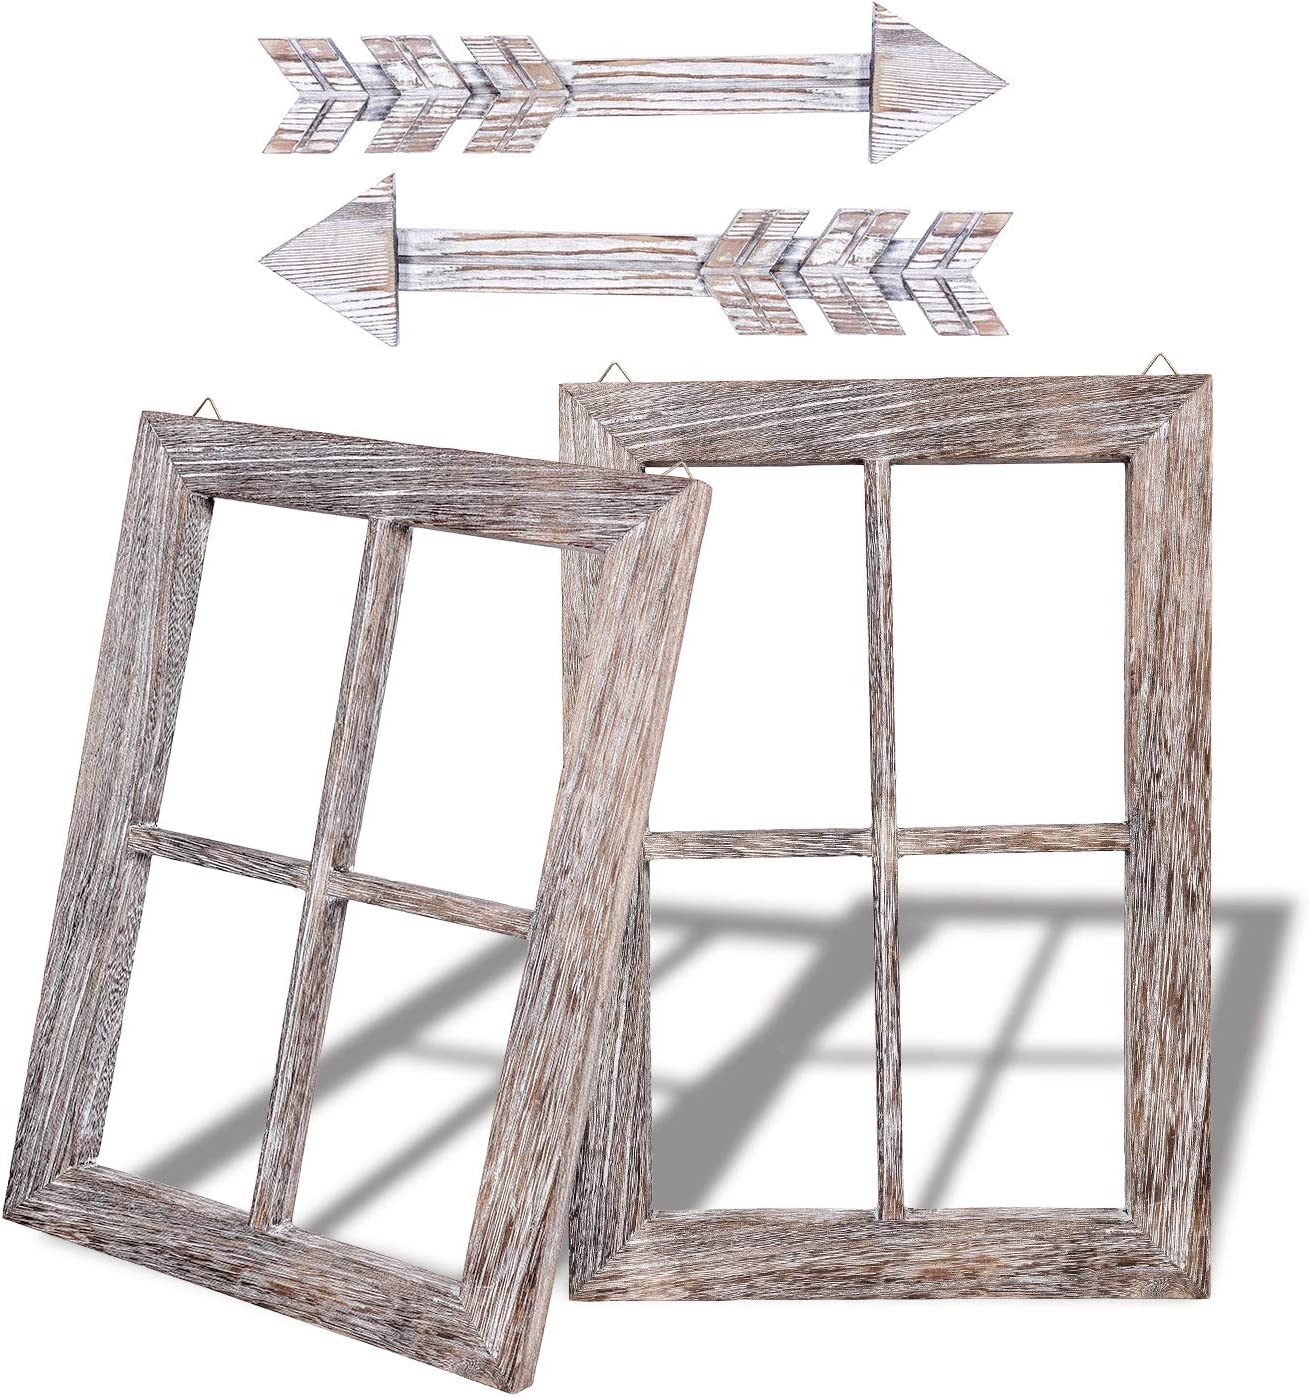 Rustic Wall Decor Wood Window Frames & Arrow Decor - FarmhouseDecoration for Home (11X15.8 inches, 2set)